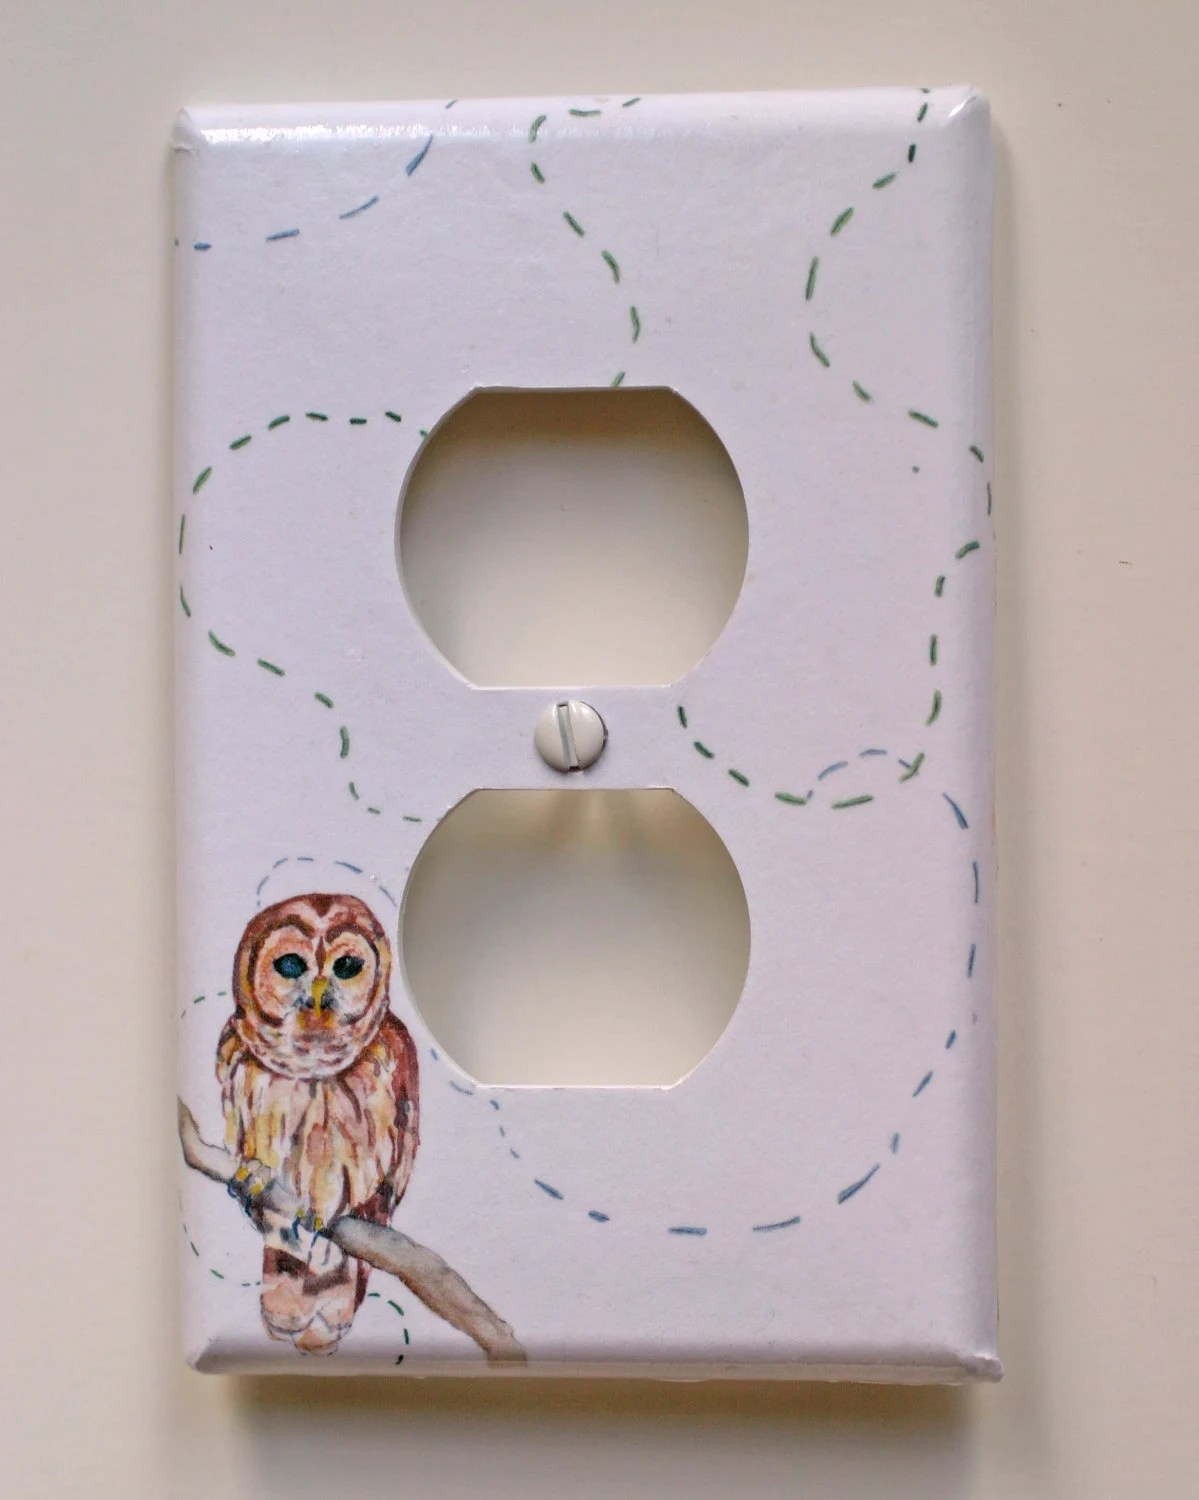 Owl Room Decor Owl Baby Room Decorations Photograph Outlet Cover Grea